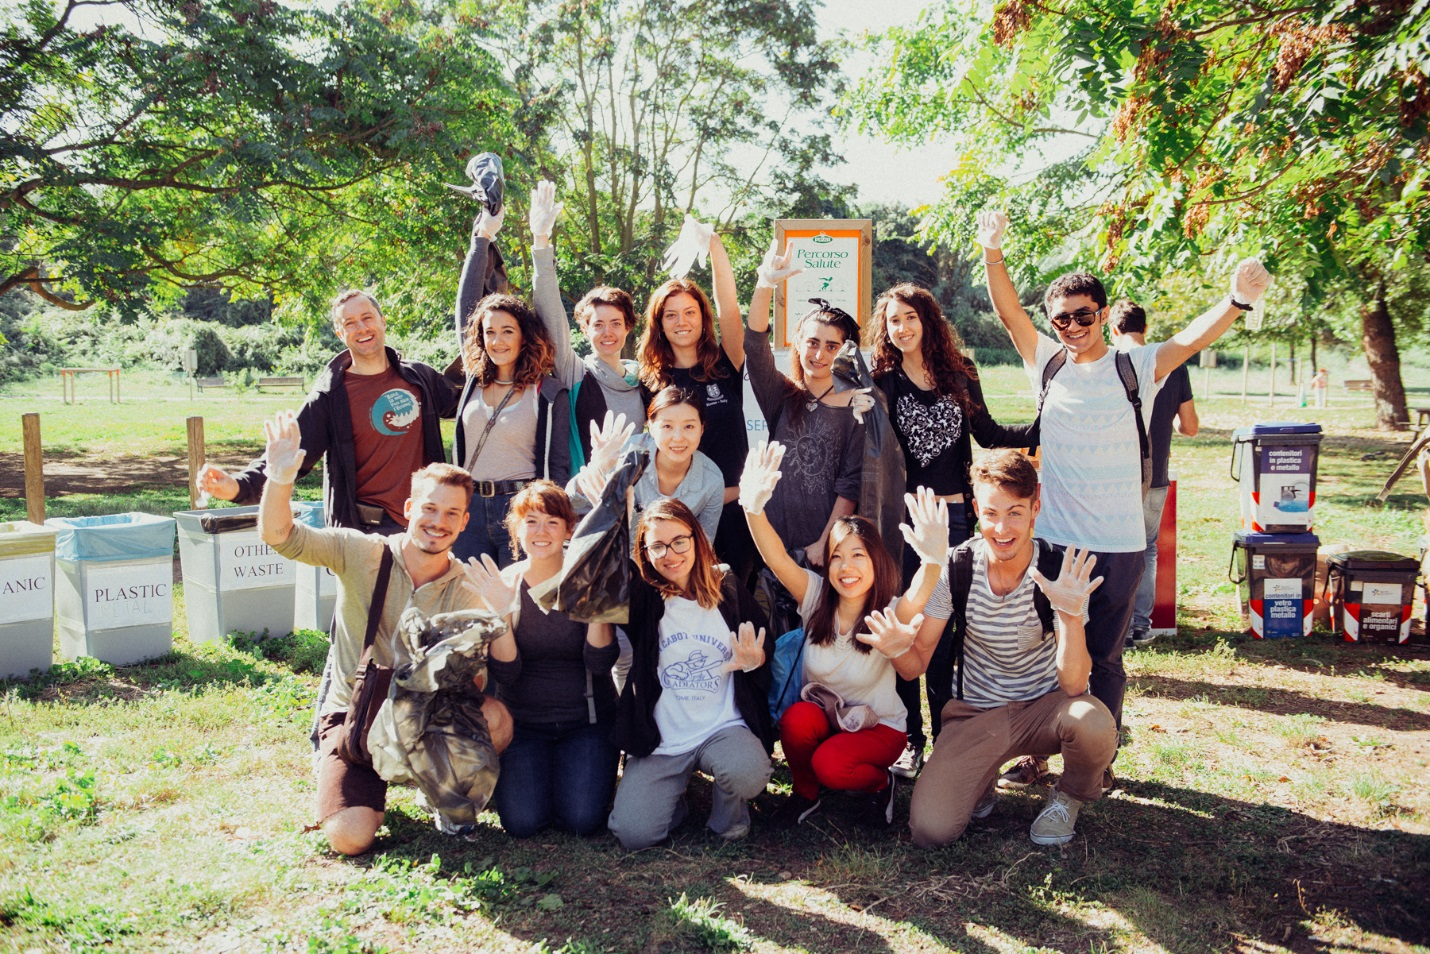 Best Ways to Make New Friends While You Study Abroad in Italy, Study abroad in Rome, making friends at university, international students in Italy